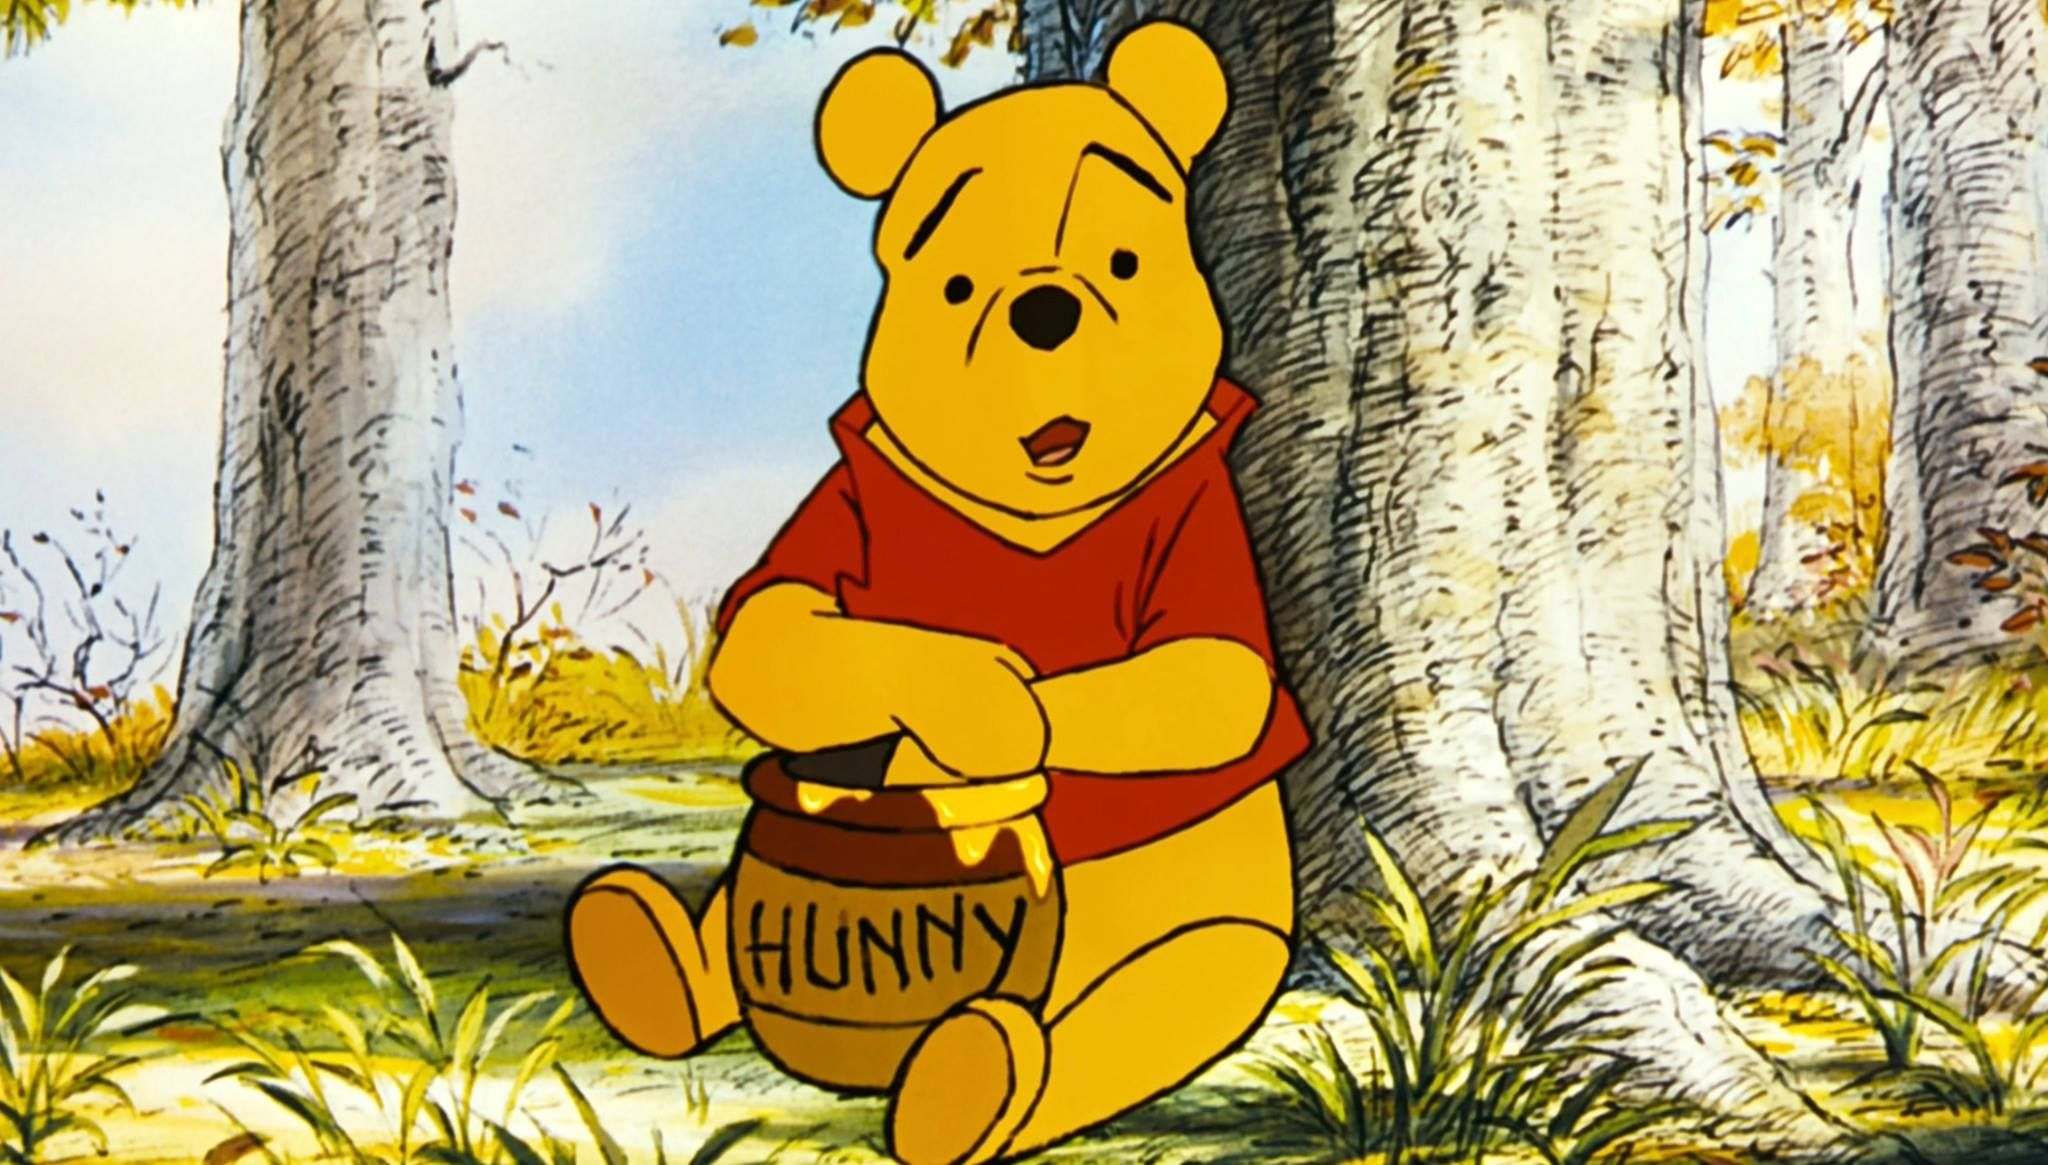 What sex is winnie the pooh